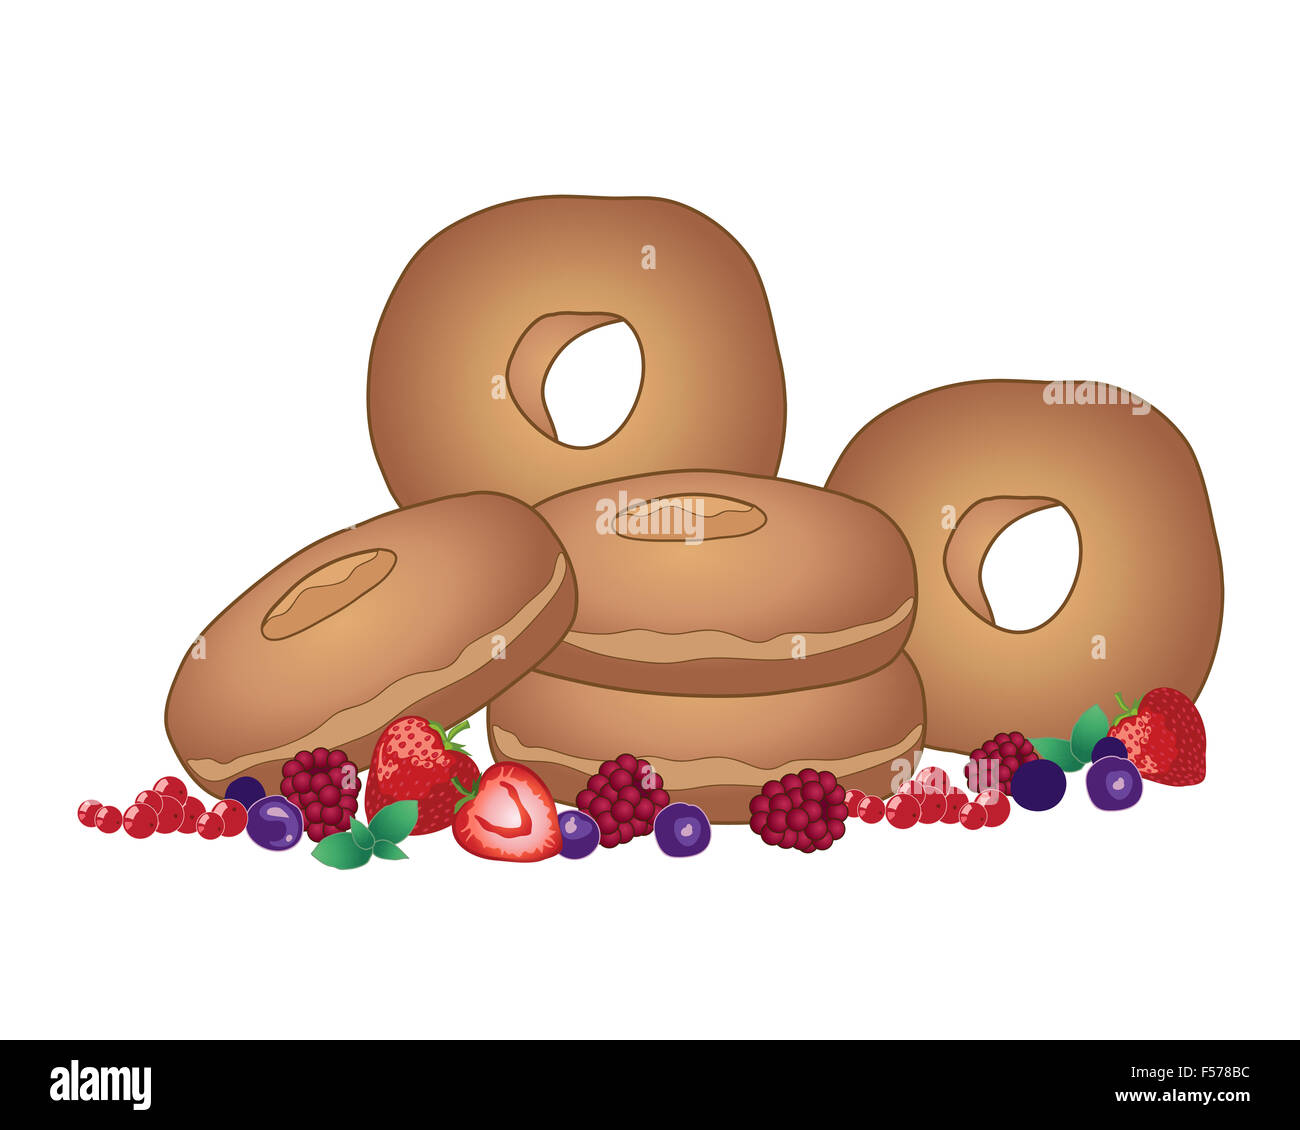 an illustration of a pile of plain doughnuts with a mixture of fresh fruits on a white background - Stock Image